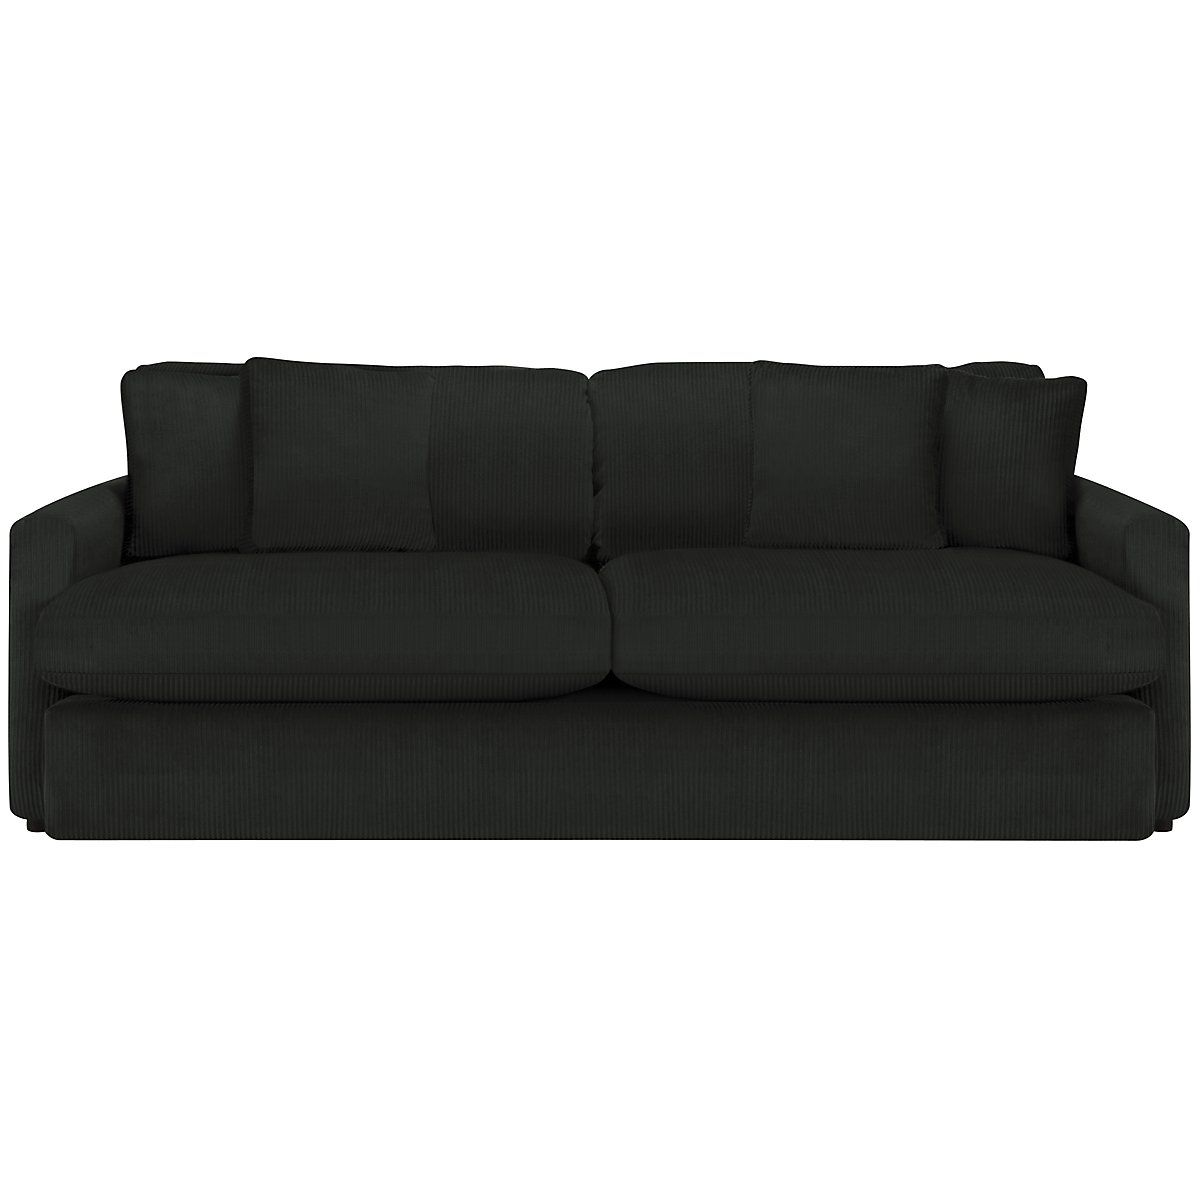 Awesome Black Suede Couch Luxury Black Suede Couch 99 For Sofas And Couches Set With Black Suede Couch Http Sofascouch Com Bla Suede Couch Sofa Couch Set